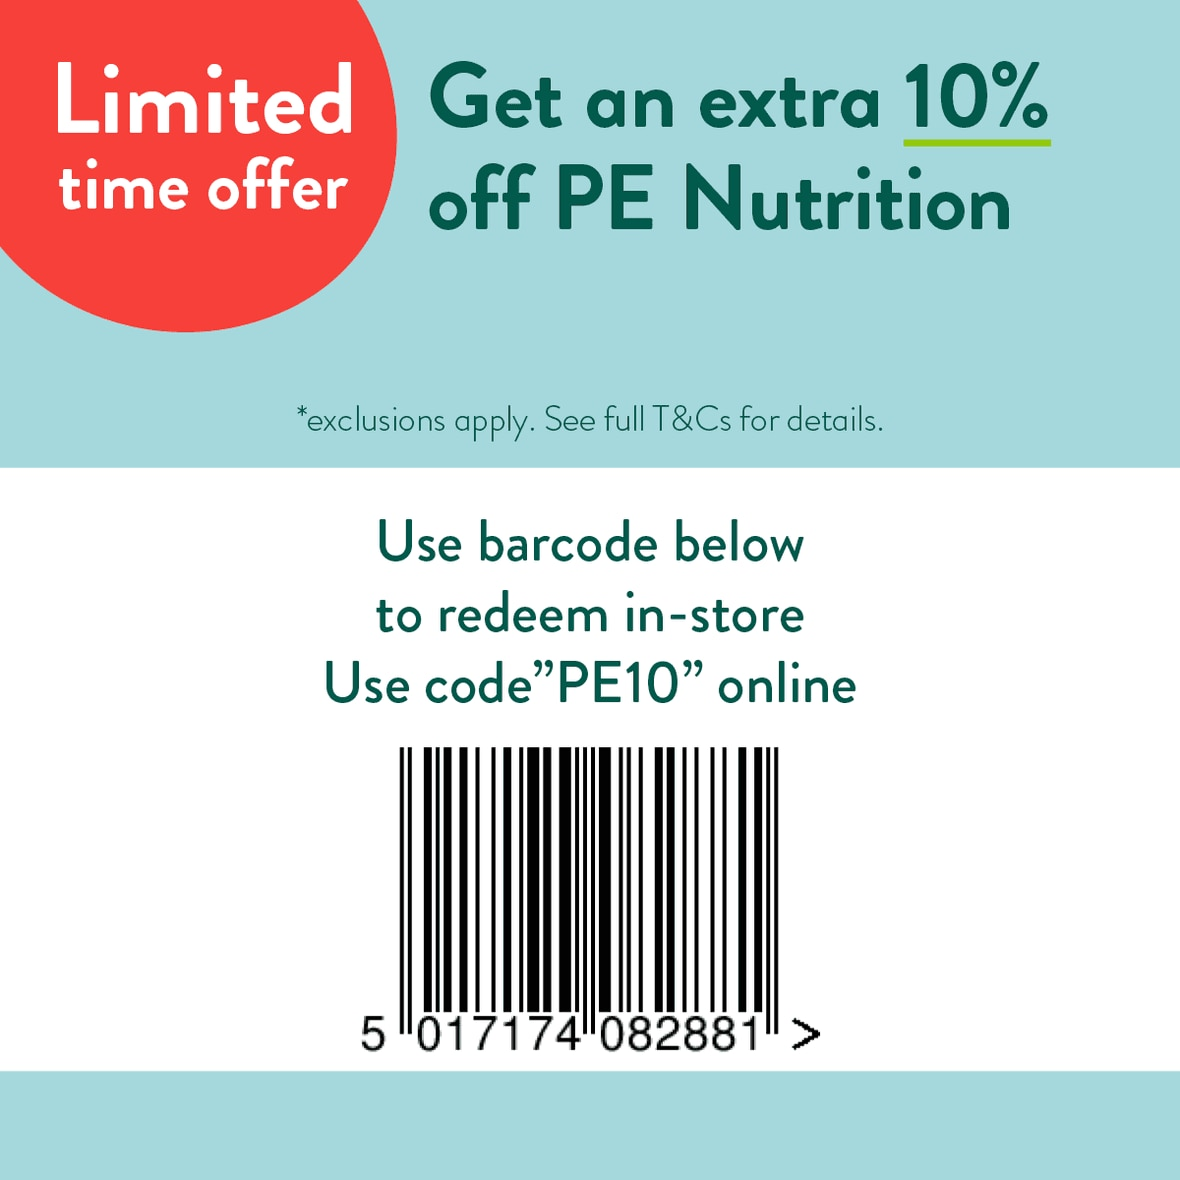 Redeem in store barcode